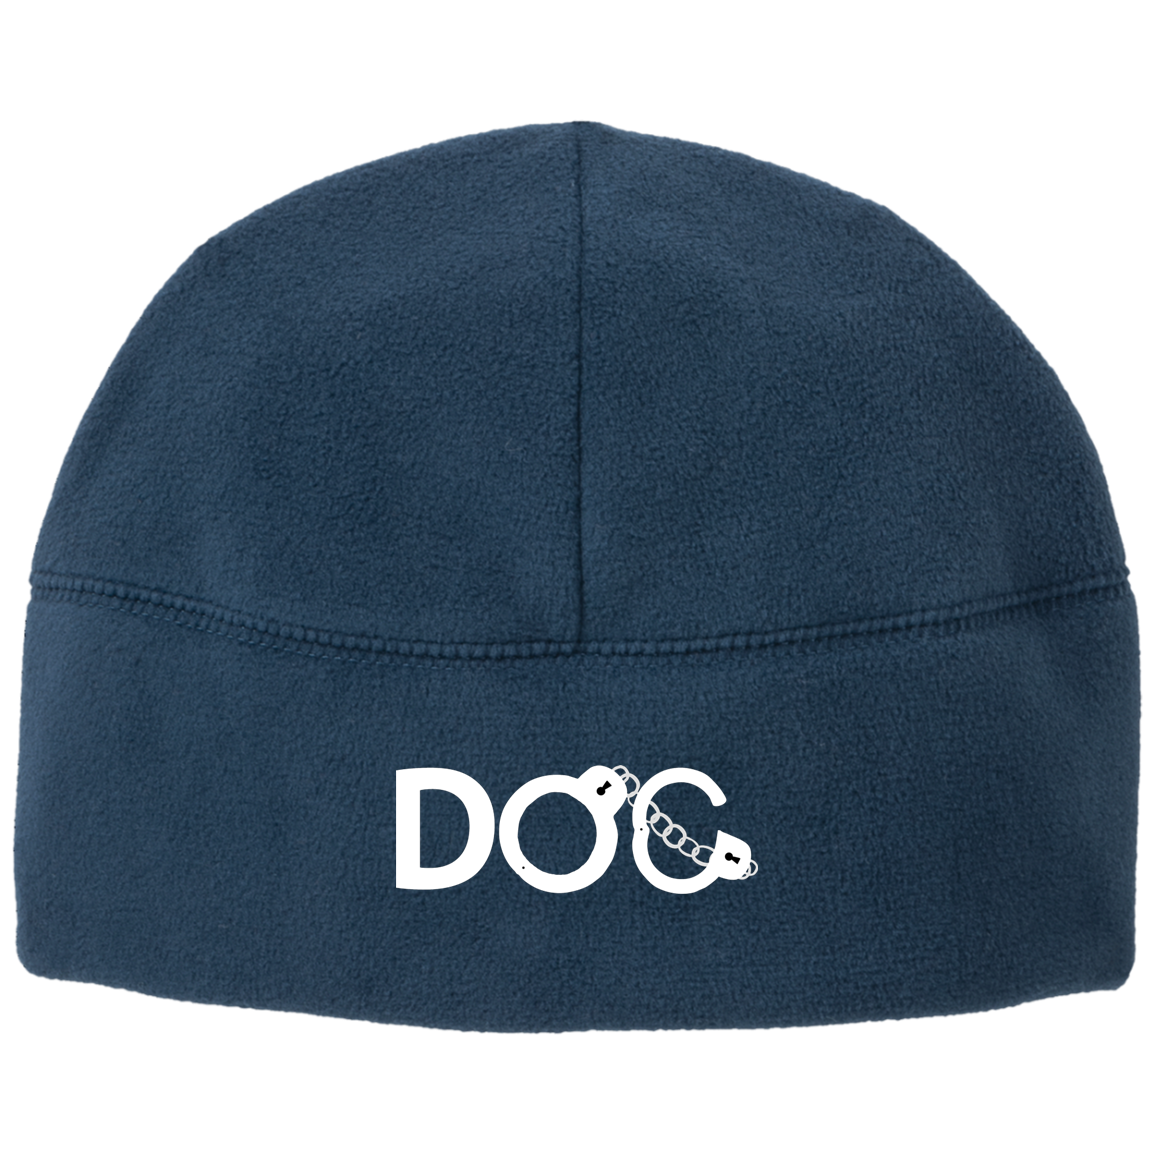 DOC Cuff Embroidered Logo Designer Port Authority Fleece Beanie Diamondz Original Clothing